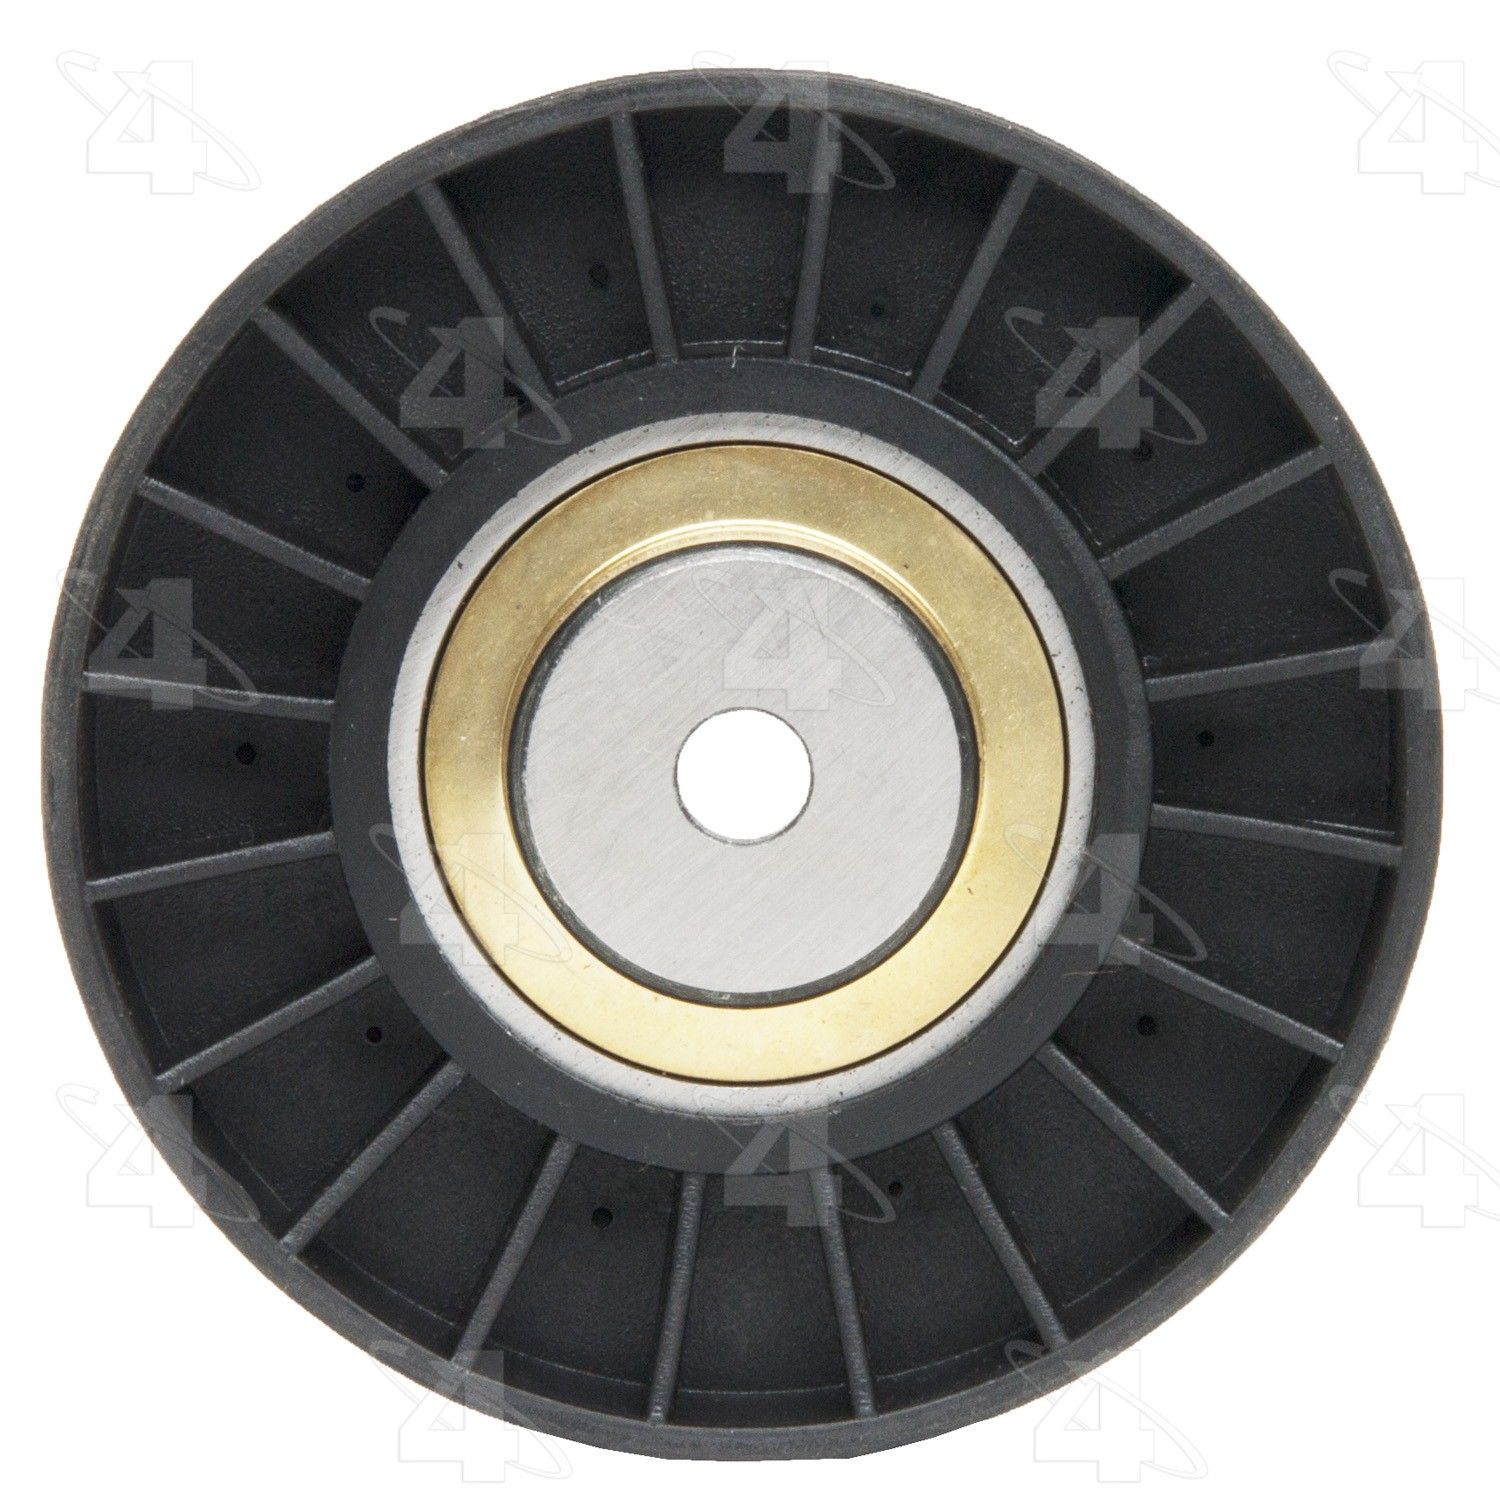 Volkswagen Eurovan Drive Belt Idler Pulley Replacement Dayco Four Timing 1993 Seasons 45031 With 3 1 4 Diameter Smooth